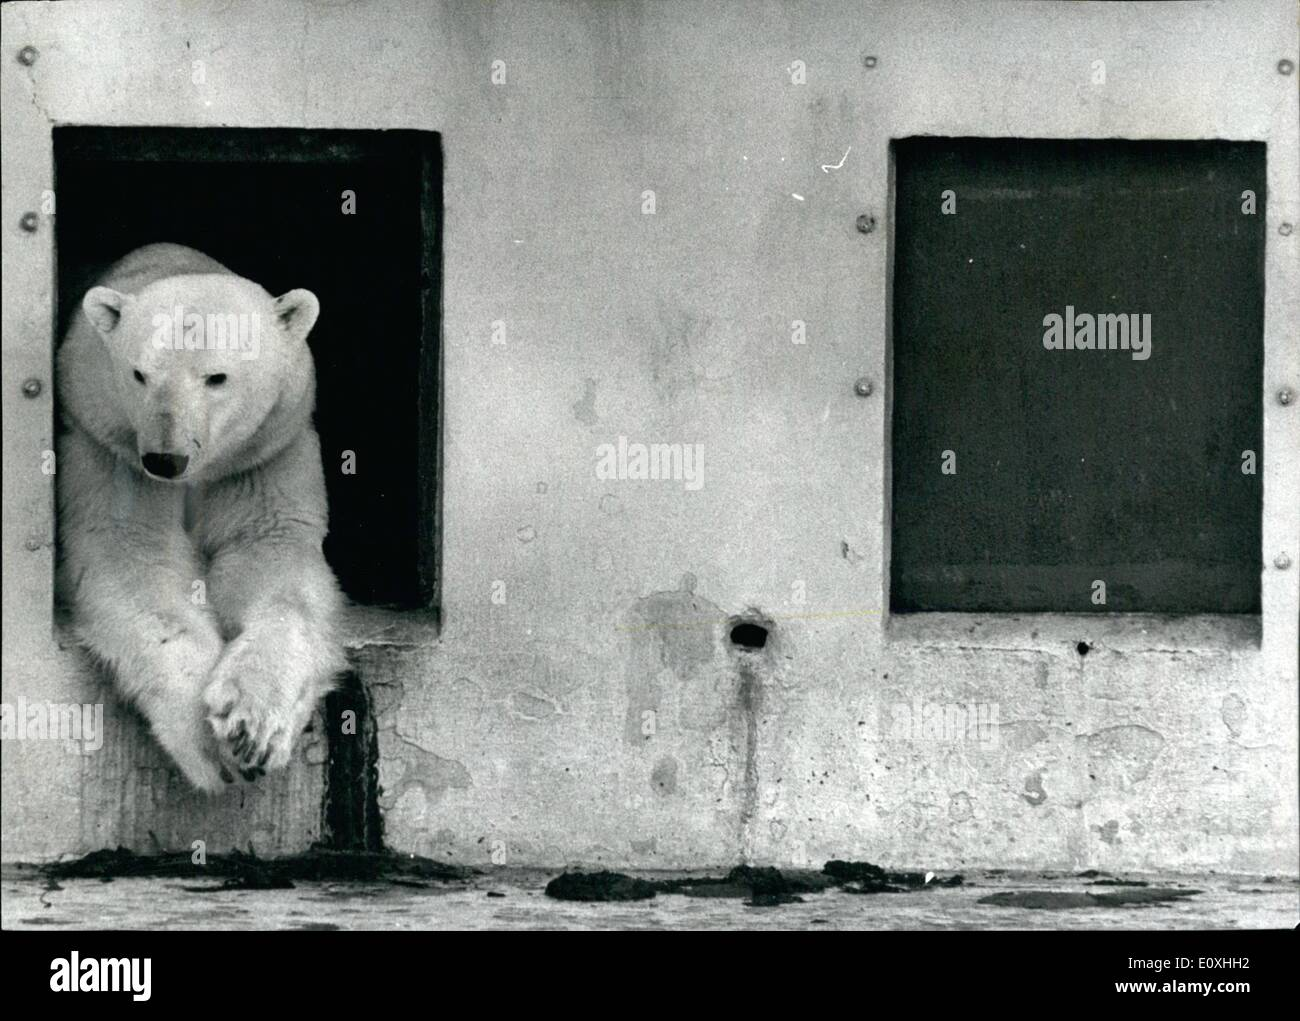 Jan. 01, 1967 - The waiting part is the worst. Every father - to be knows the feeling. The waiting part is the worst. In the case of Hans, a five-year-old polar bear at Dudley zoo, Worcestershire, the waiting cart has already lasted five months - since his wife, Helga, went into confinement. Zoo staff built a darkened maternity ward for her, out off from the outside world because polar bears prefer to give birth in private, No one least of all Hans, has been Helga since September, worse, on one,. least of all hams, whether Helga has given birth or not. It was understood she wanted to be alone - Stock Image